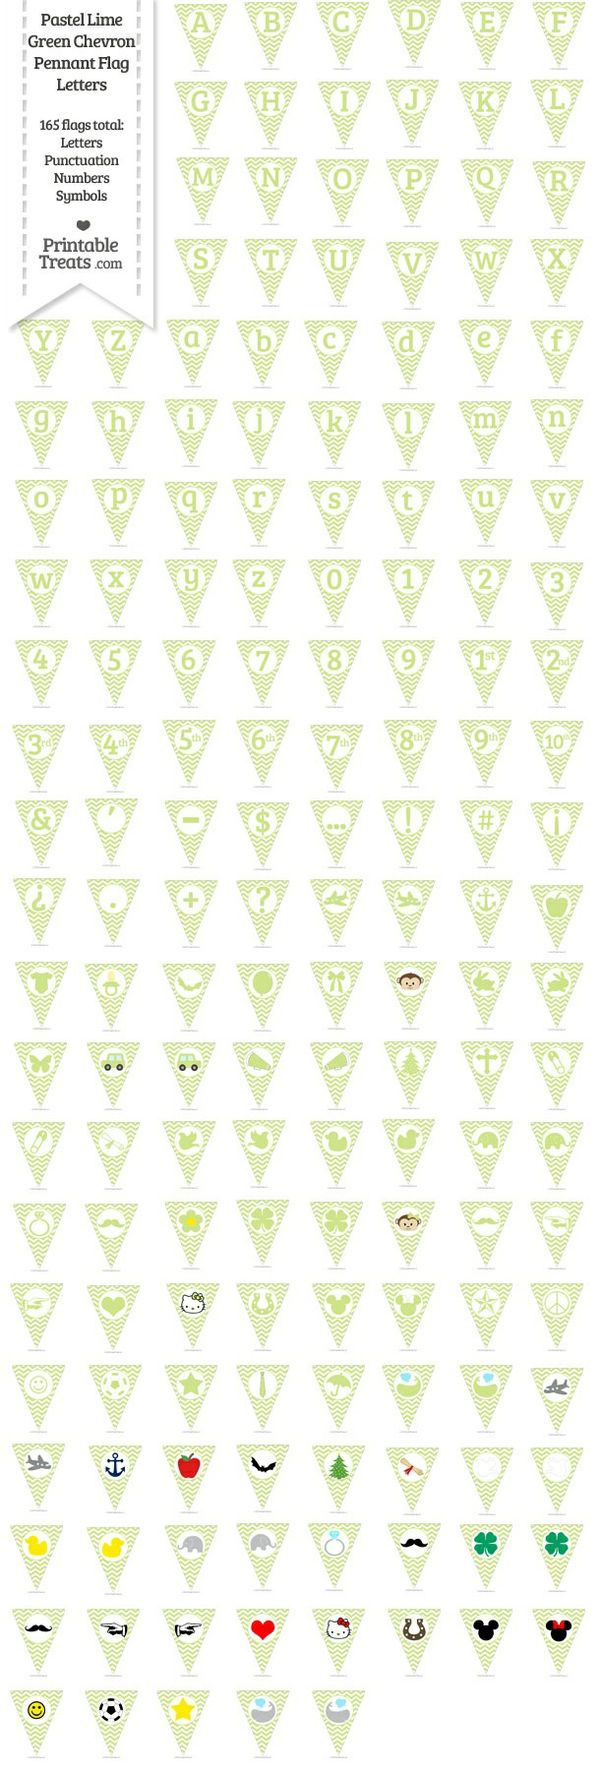 165 Pastel Lime Green Chevron Pennant Flag Letters Password